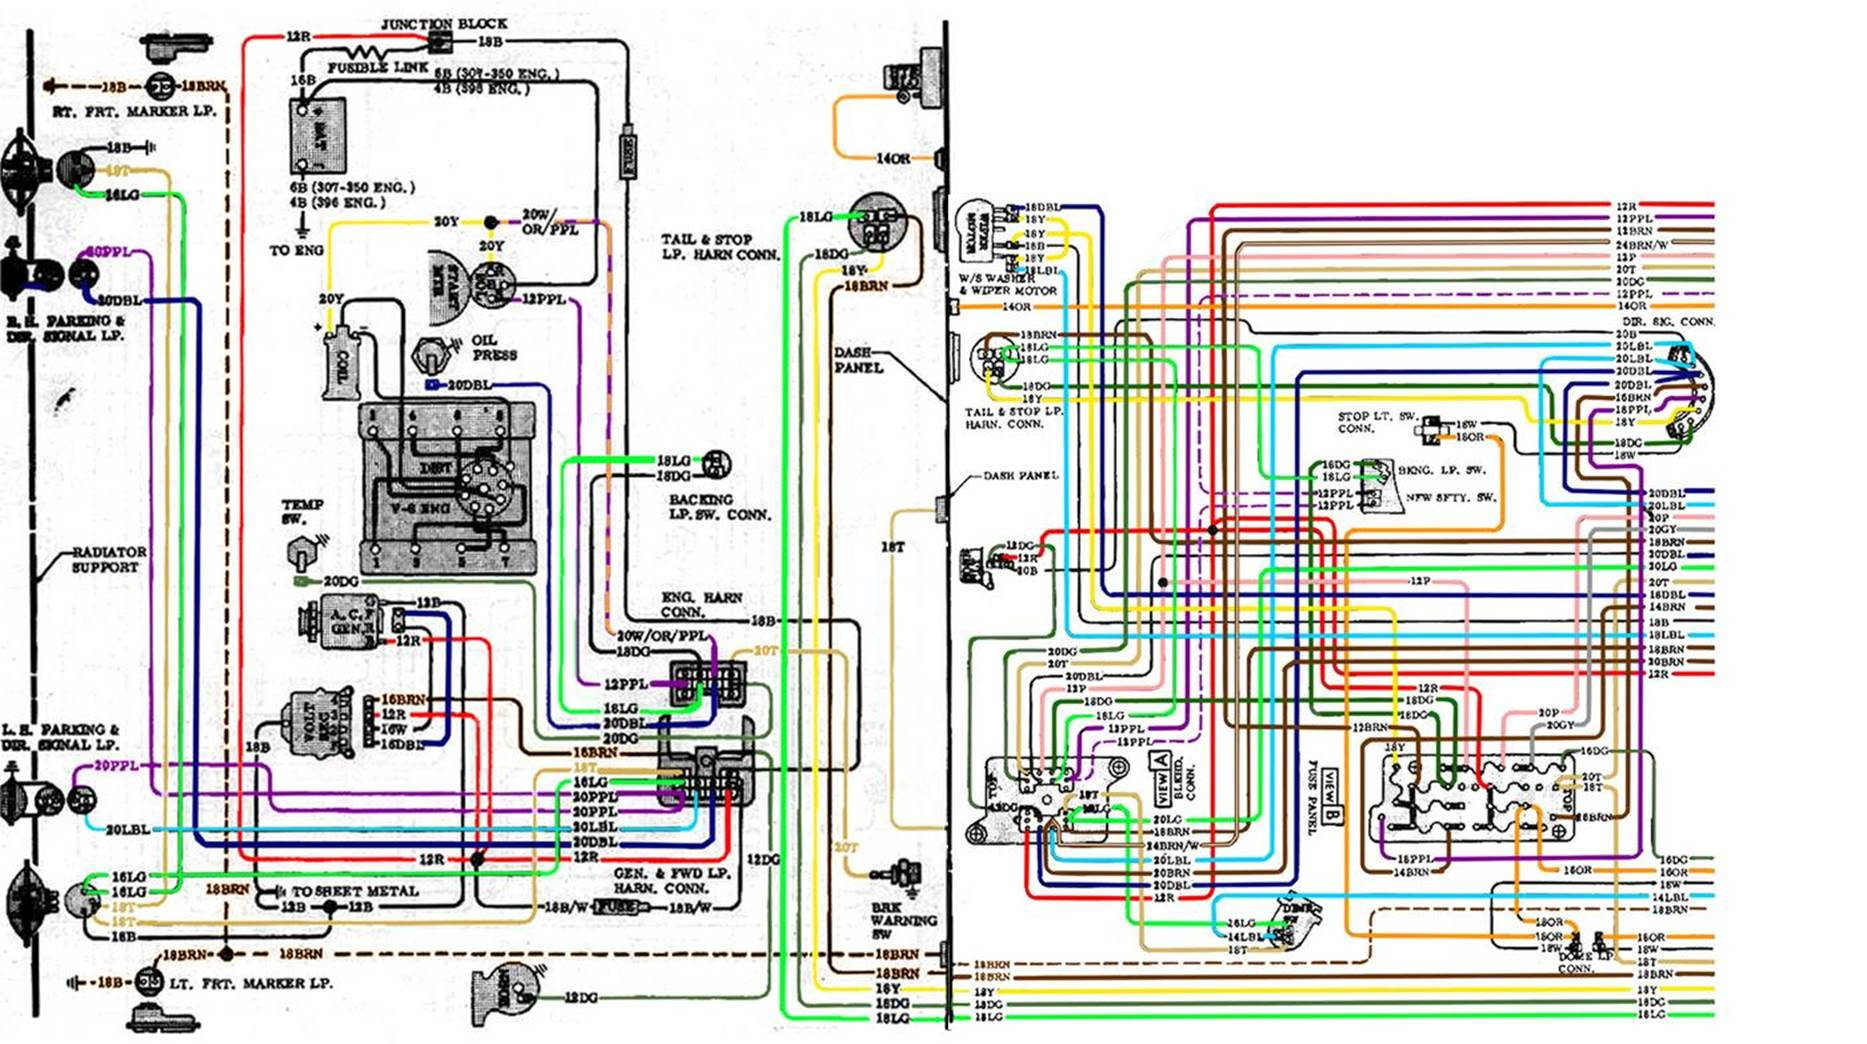 image002 1971 chevelle wiring diagram 1971 chevelle engine bay wiring 1972 chevelle wiring harness at webbmarketing.co